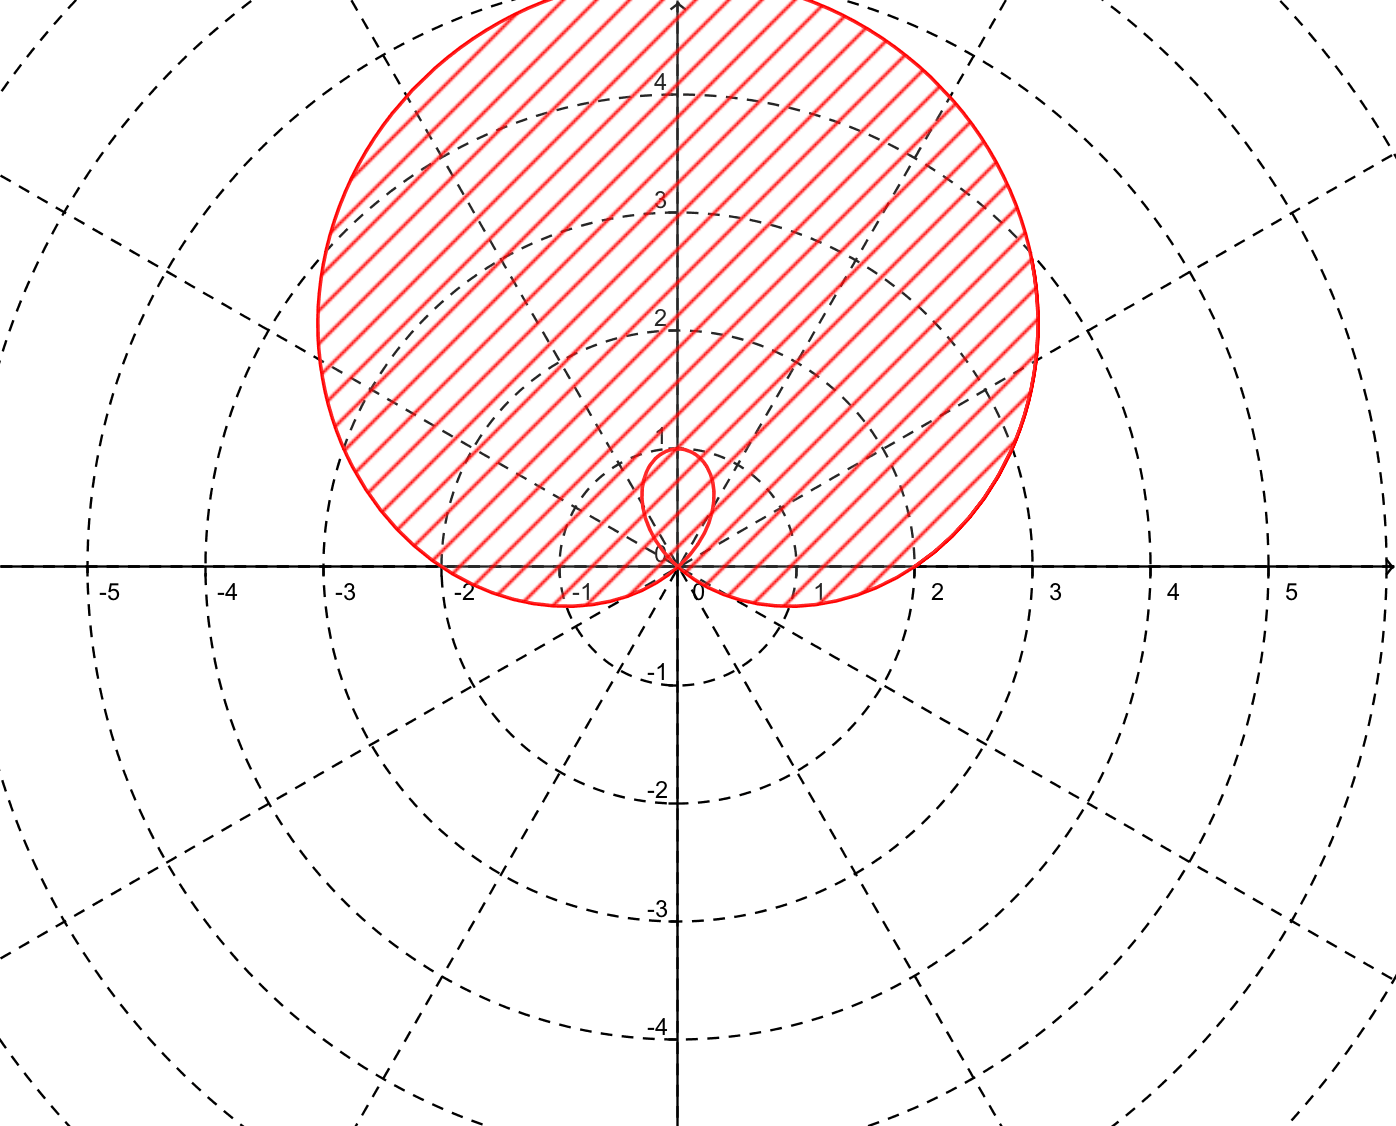 If We Set The Grid To Polar Coordinates We Can Easily Do